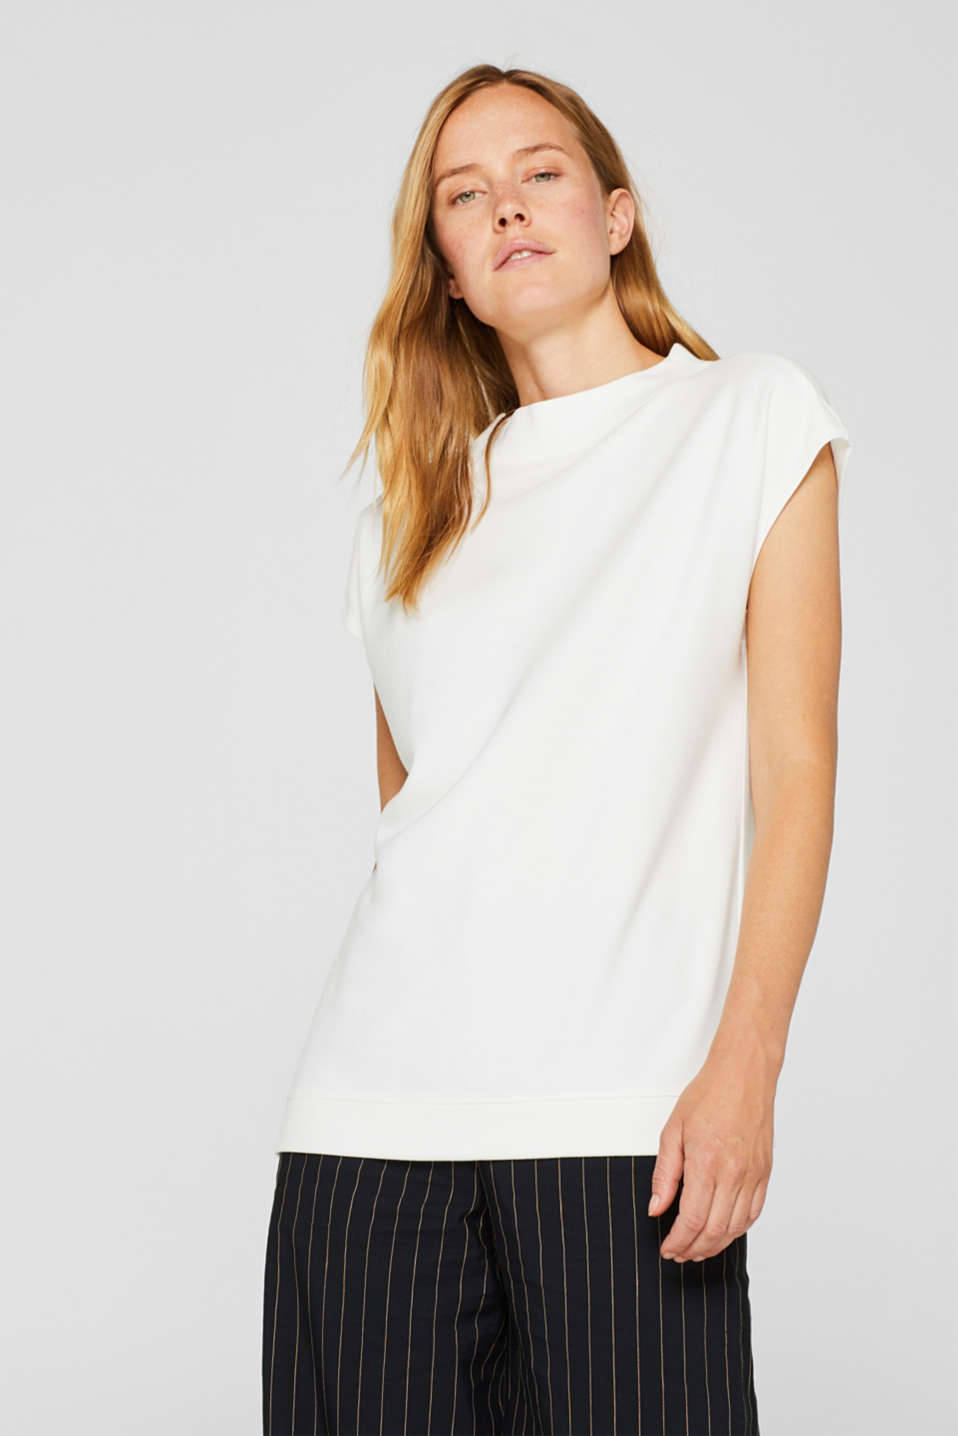 Esprit - T-shirt with band collar made of dense jersey/stretch